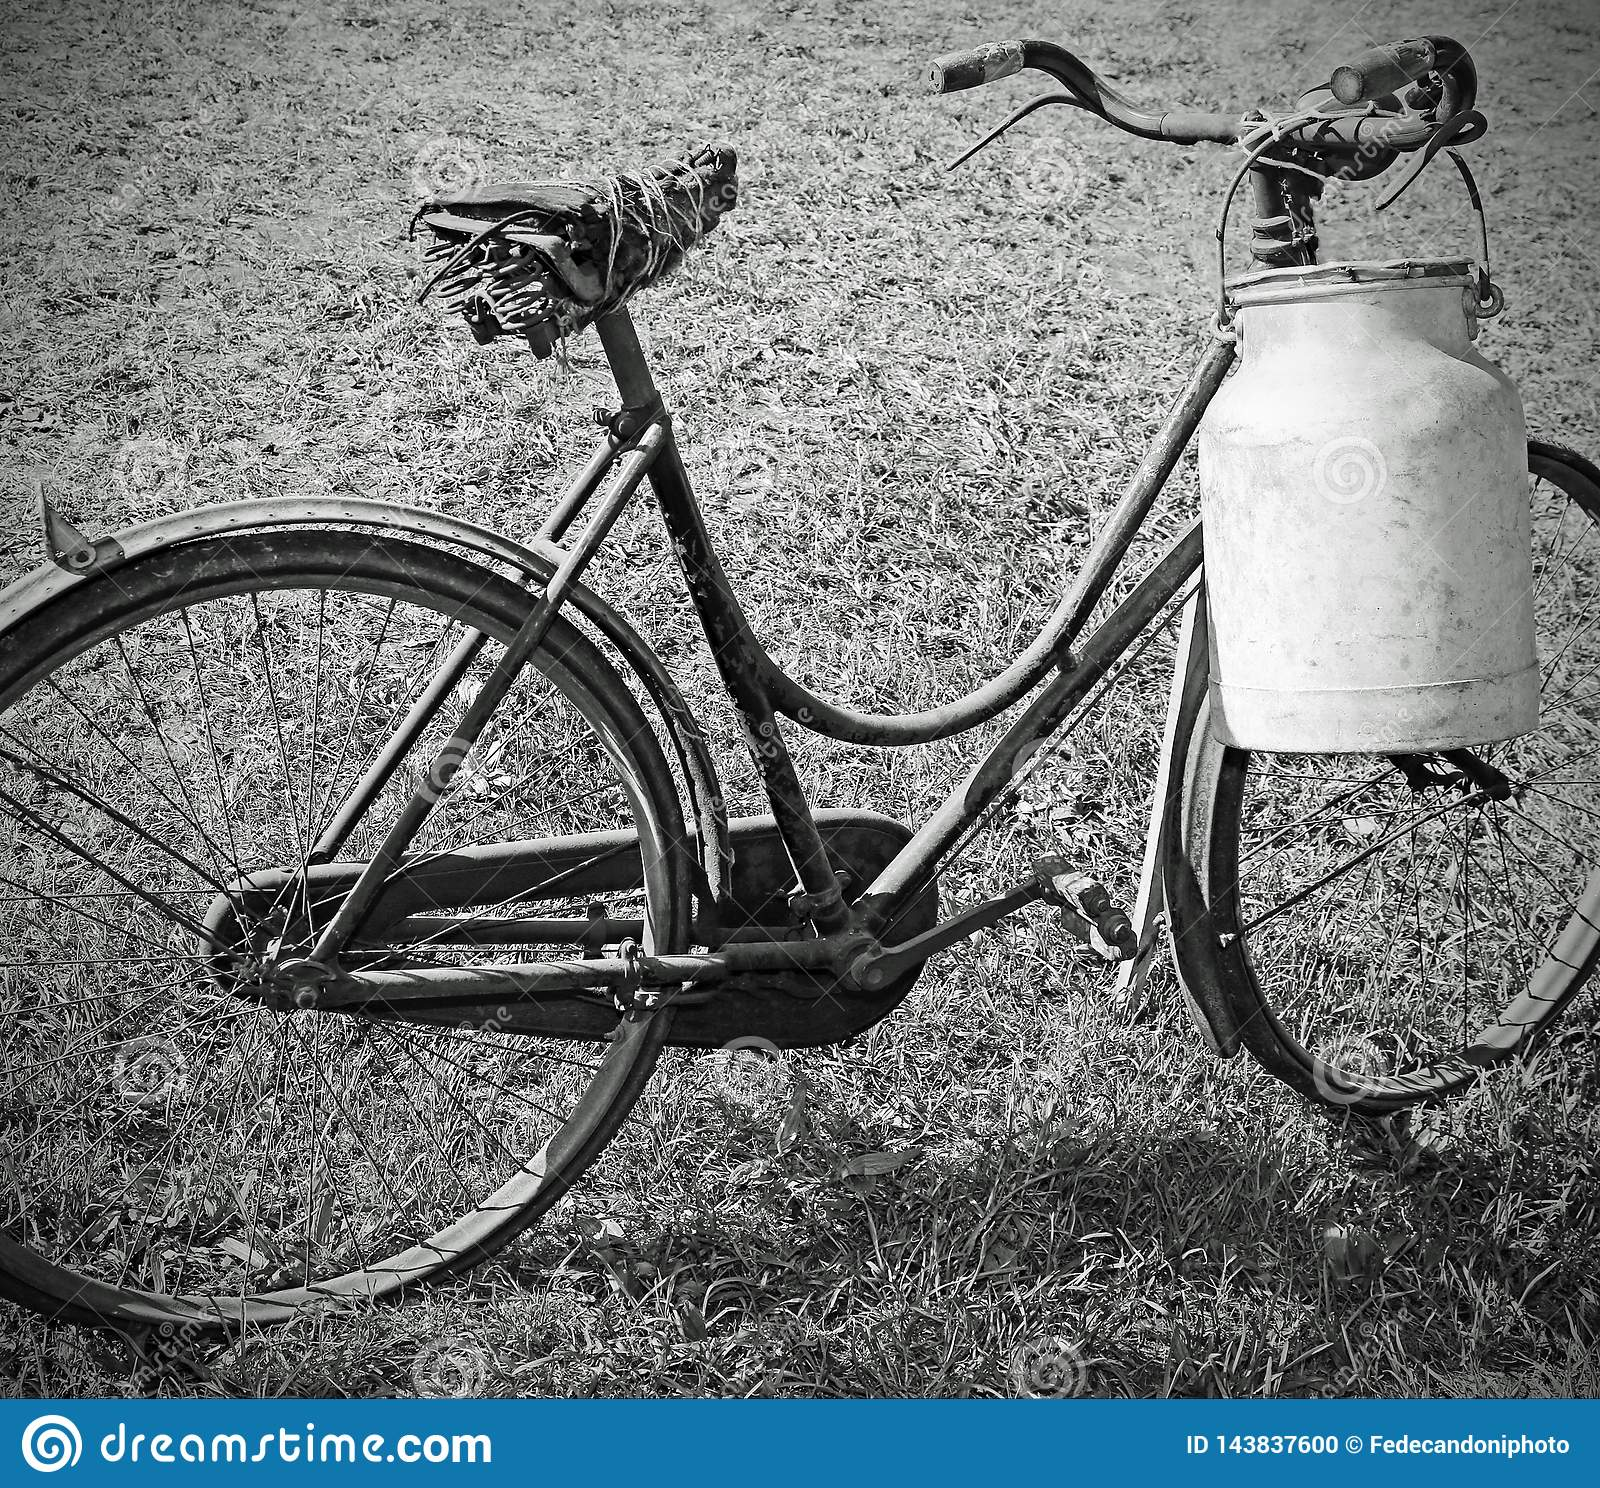 milking bike with bin for milk transport with balck and white e